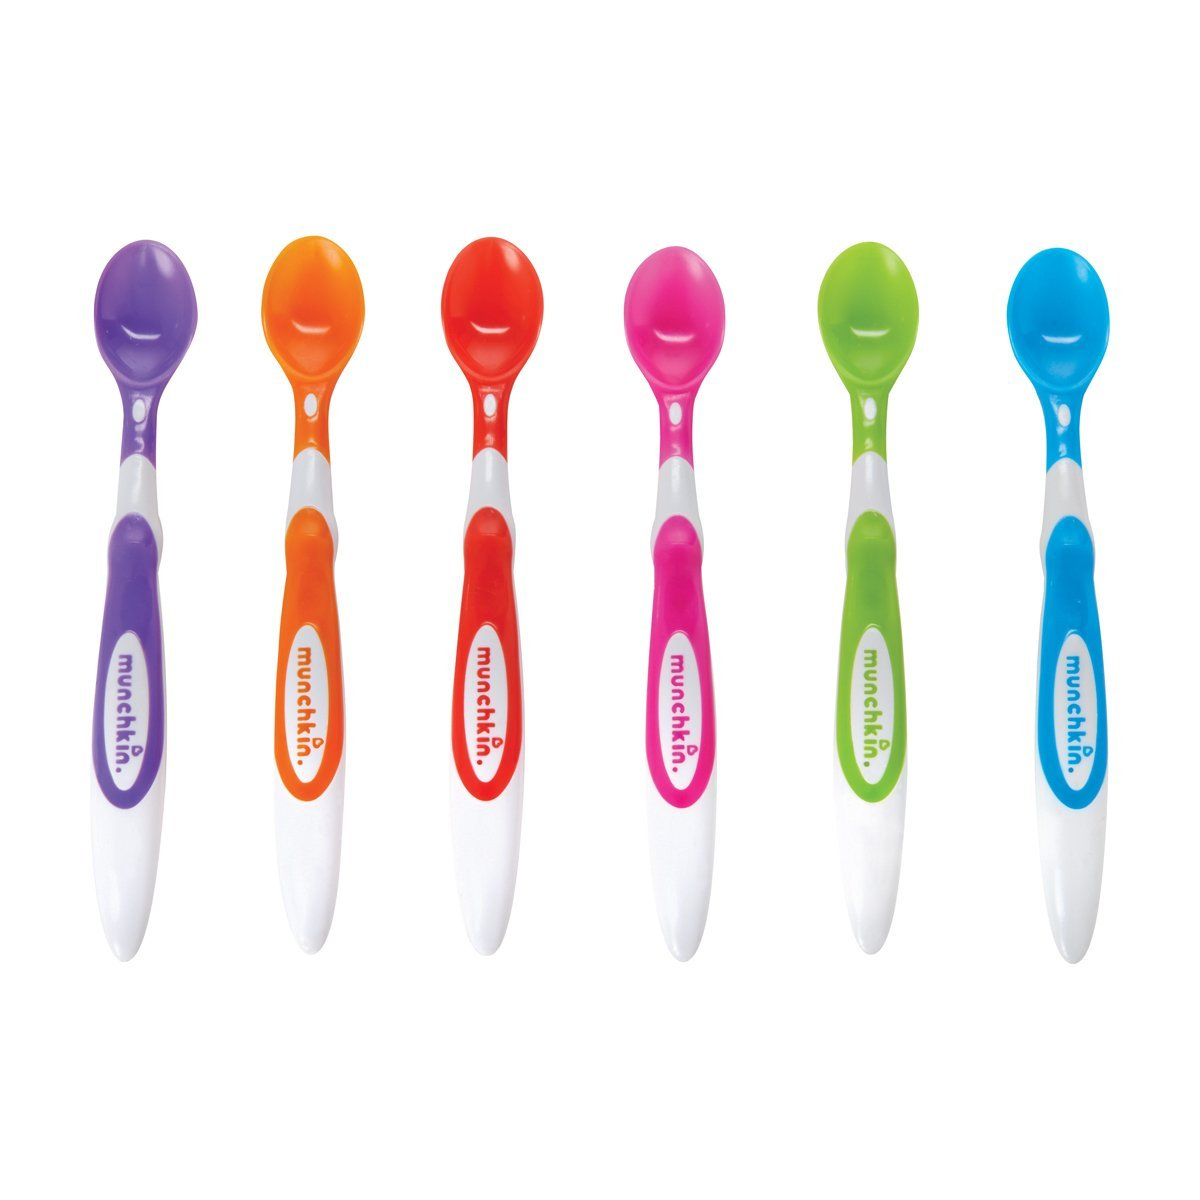 Munchkin Soft Tip Infant Spoons 6 Pack by Munchkin